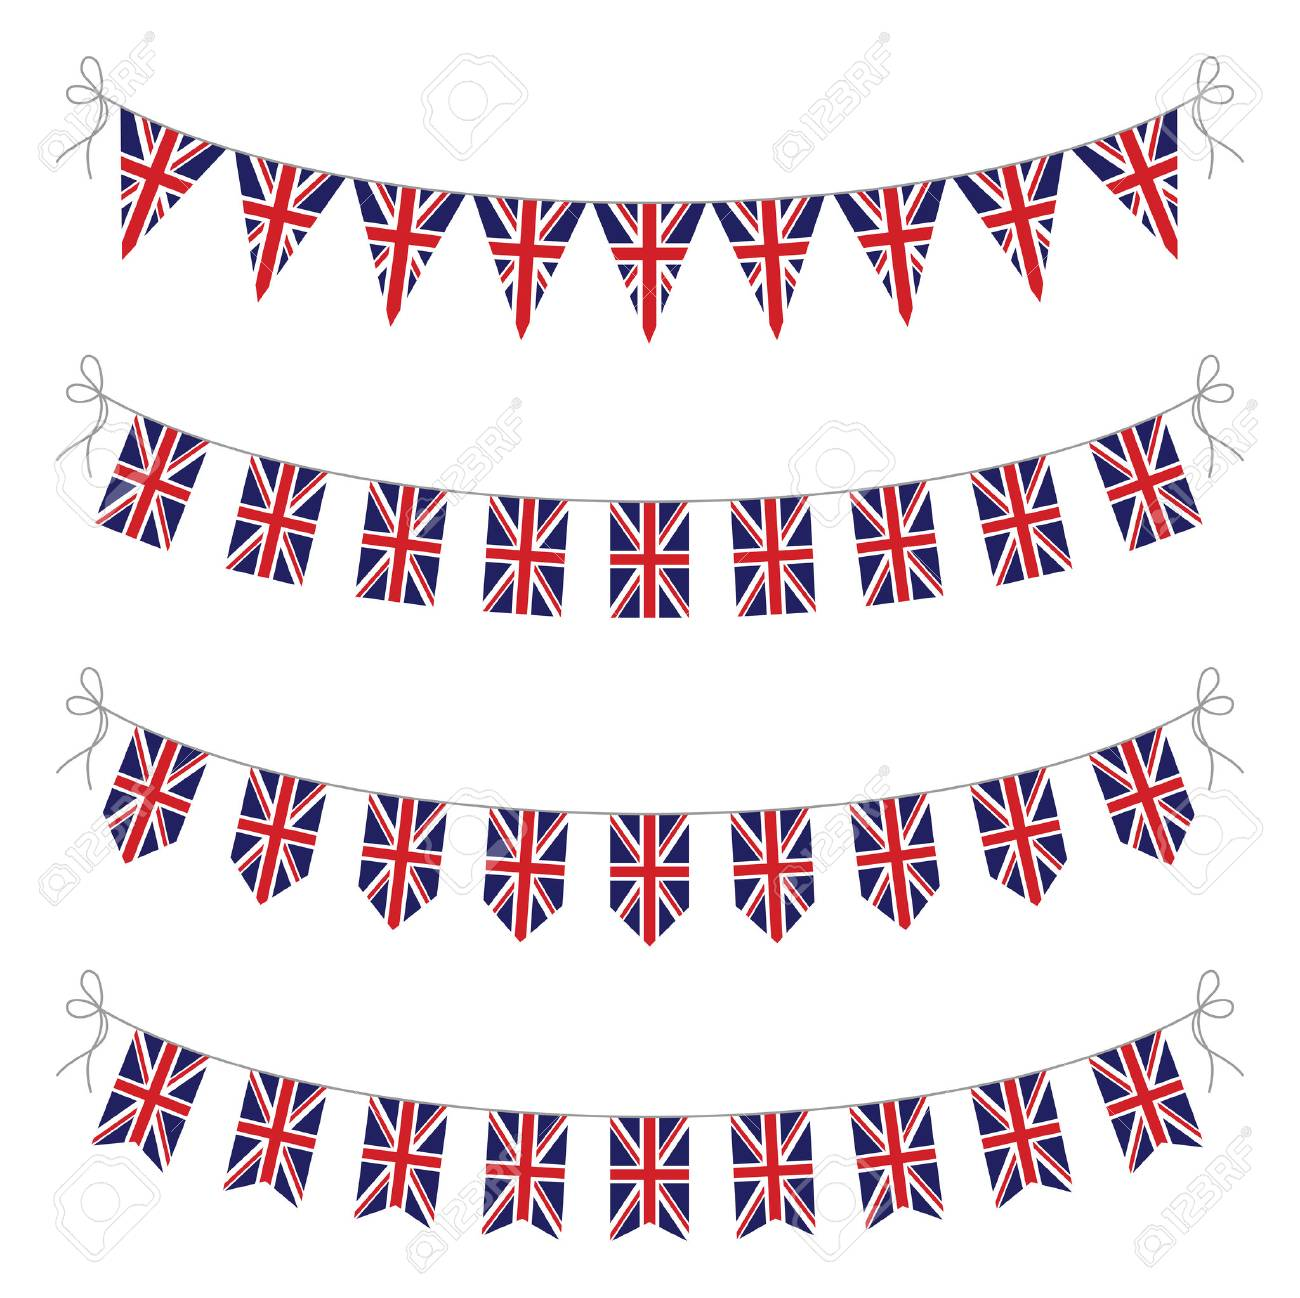 Set Of Uk Bunting Royalty Free Cliparts, Vectors, And Stock ...